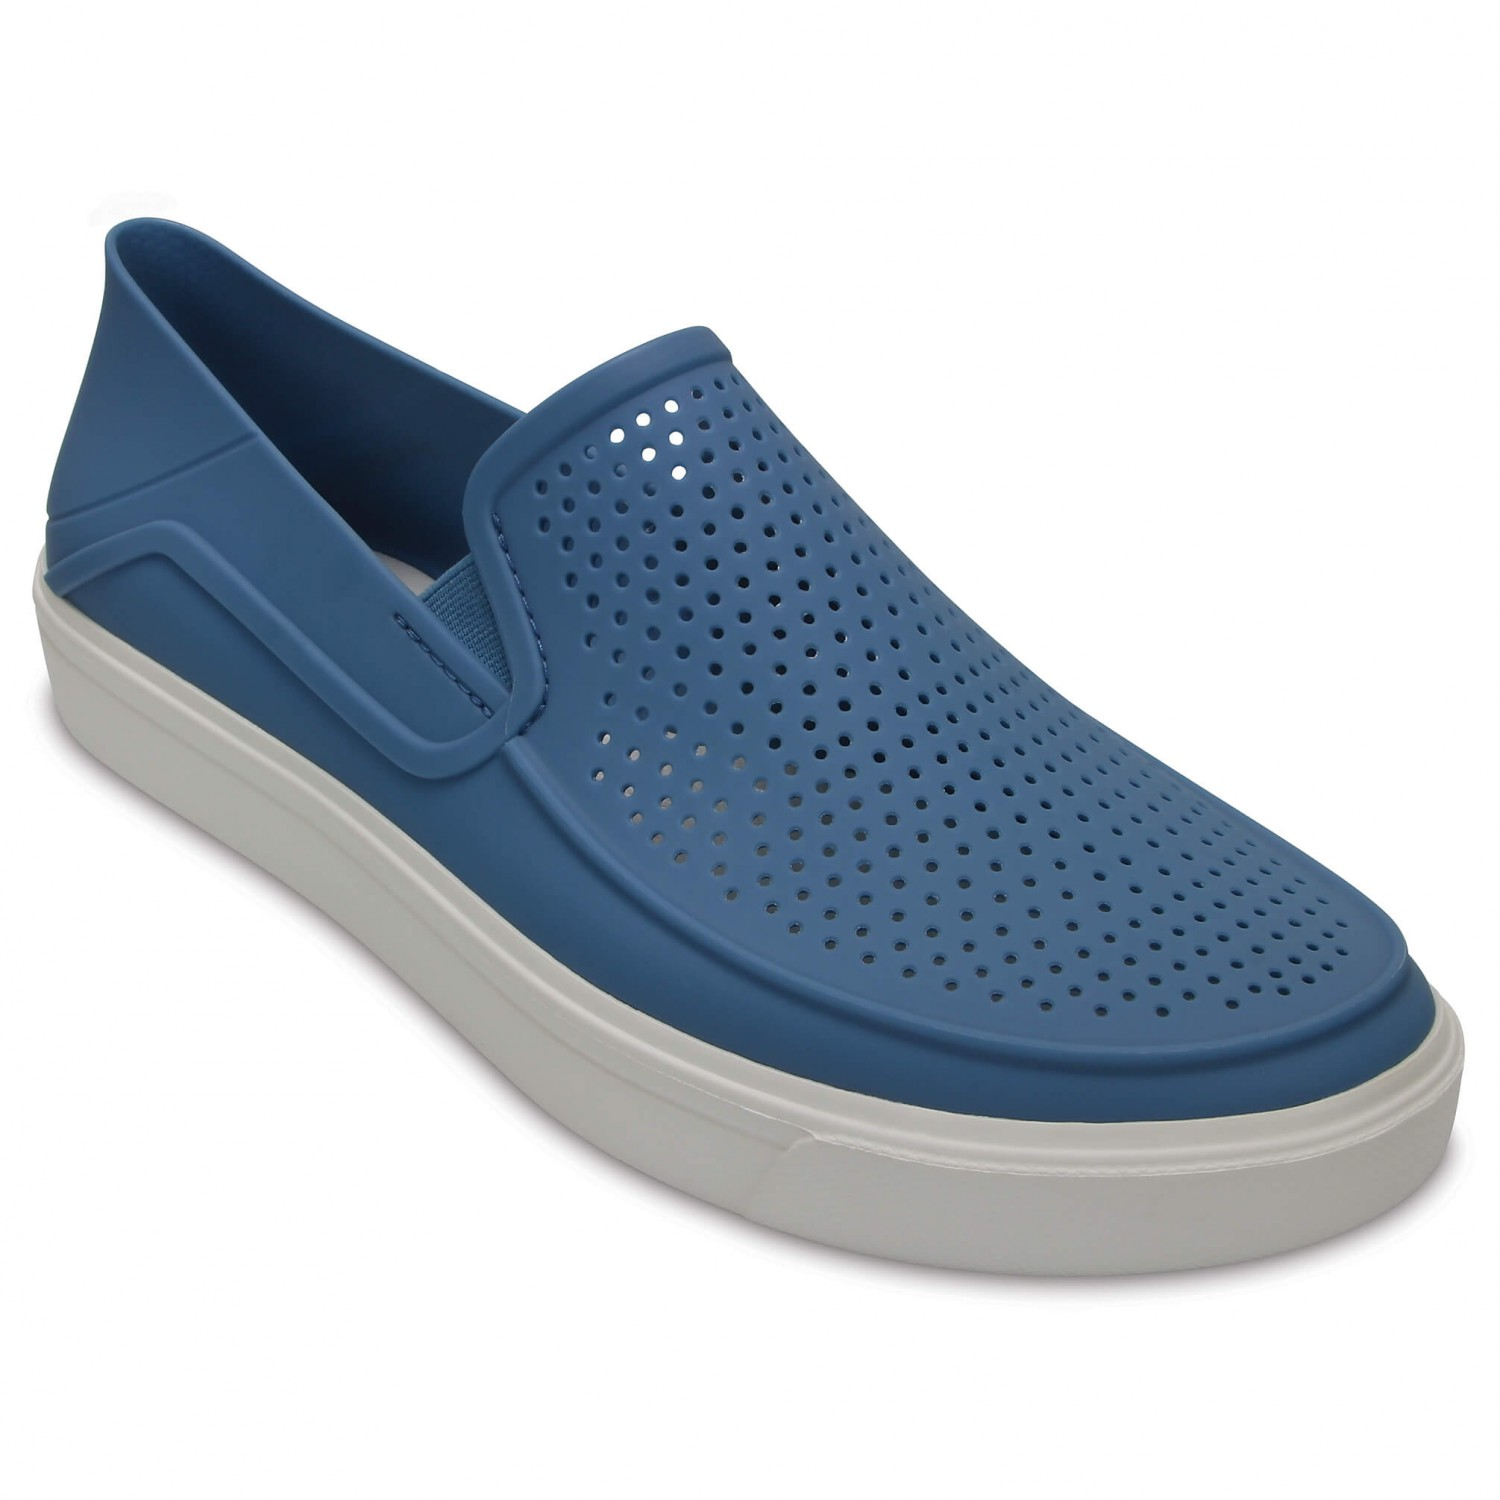 Crocs - Citilane Roka Slip-On - Outdoorsandalen Dusty Blue / White